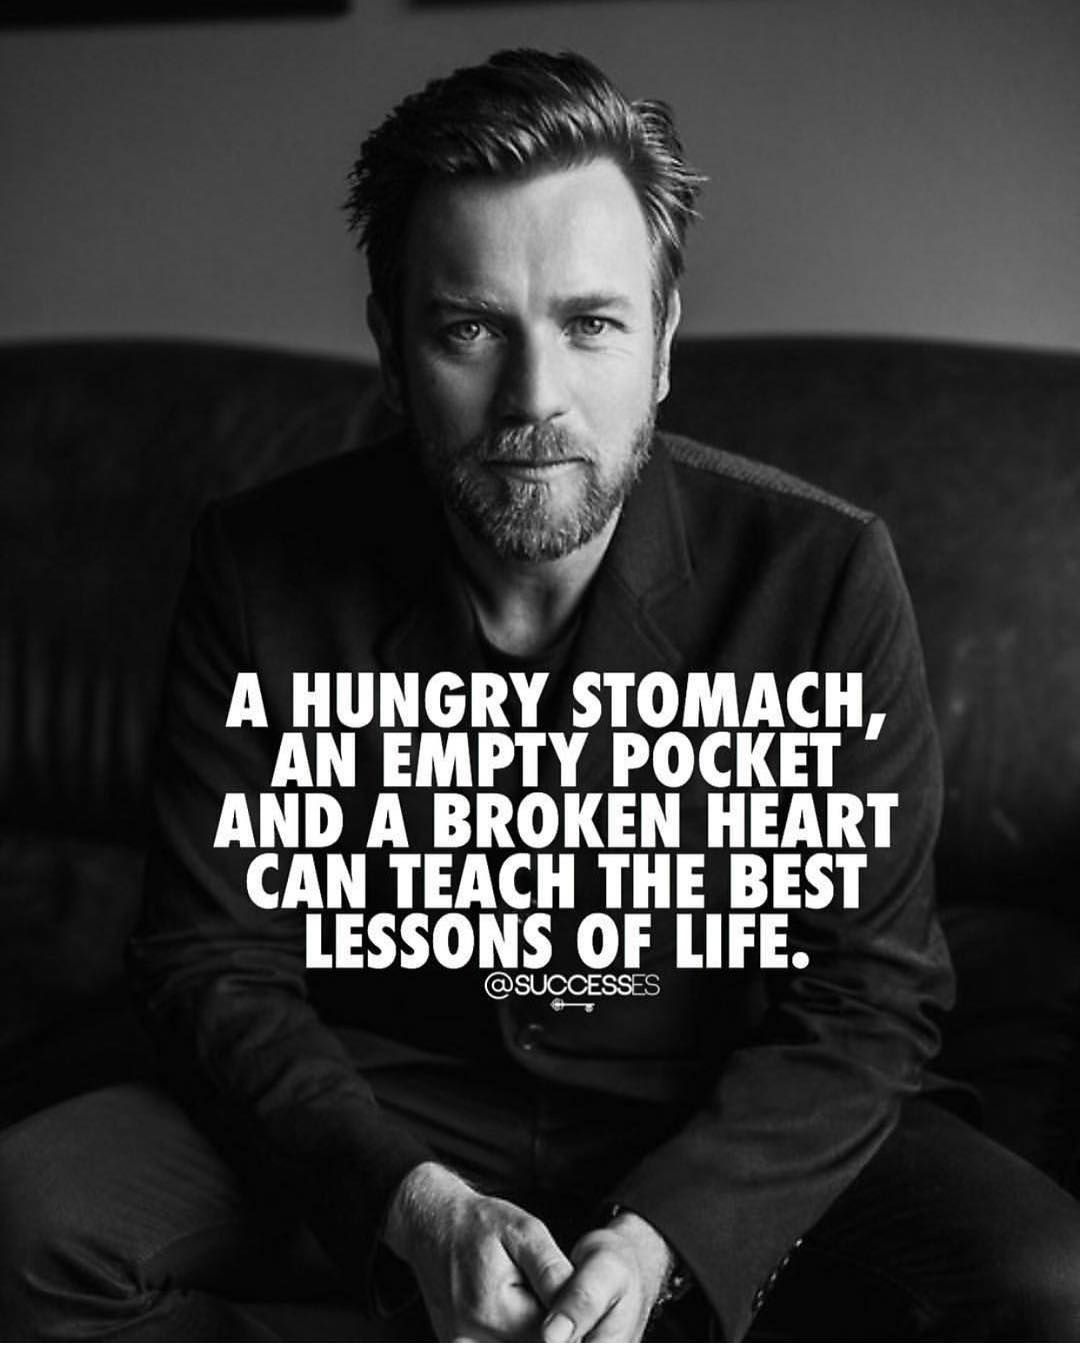 A hungry Stomach, an empty Pocket and a broken Heart can teach the best Lessons of Life - Motivation - Mindset